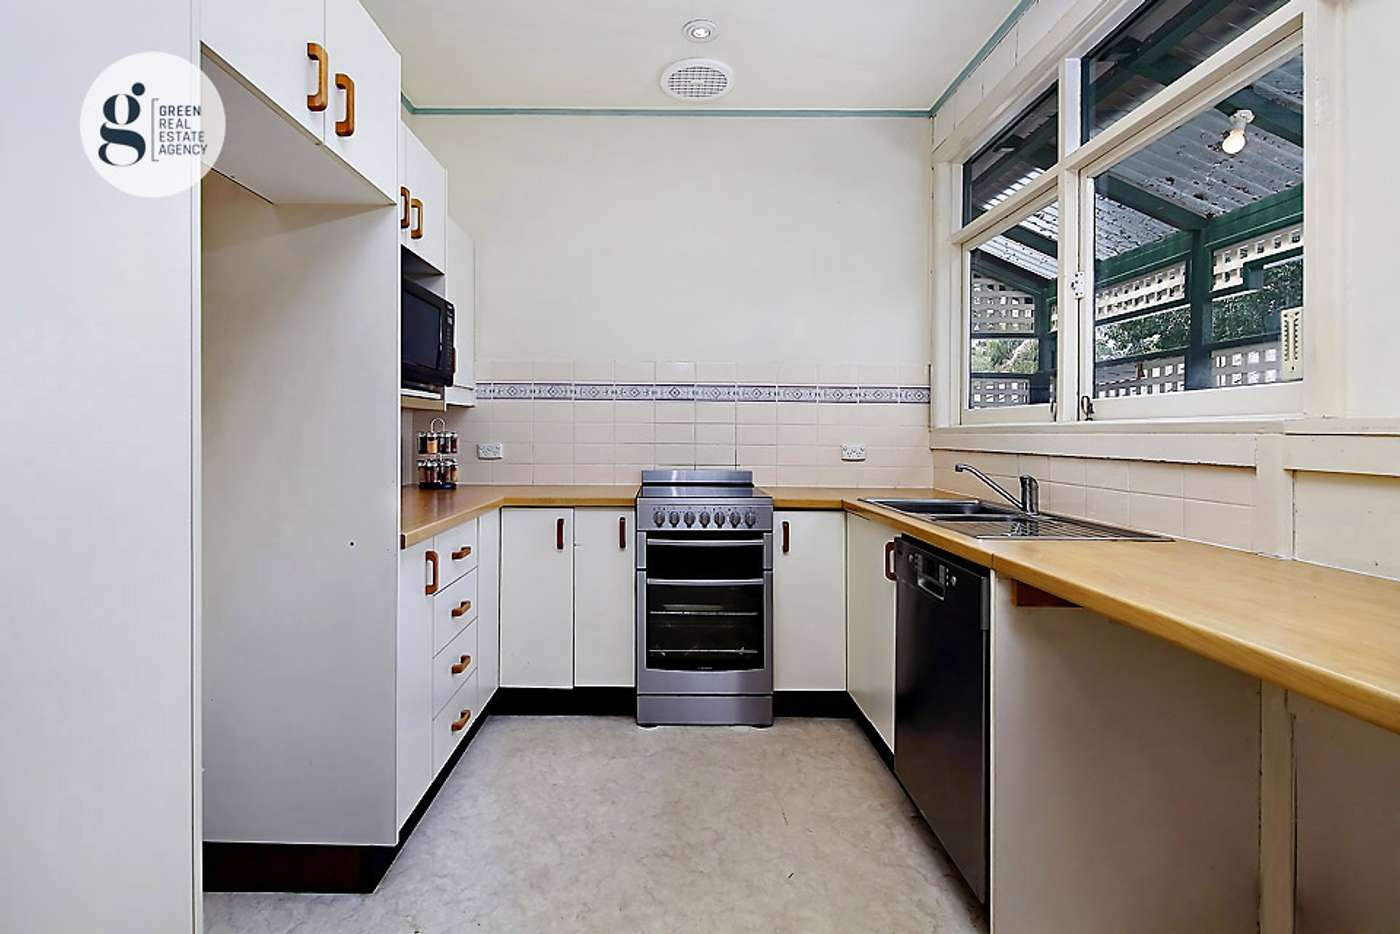 Sixth view of Homely house listing, 20 Grand Avenue, West Ryde NSW 2114